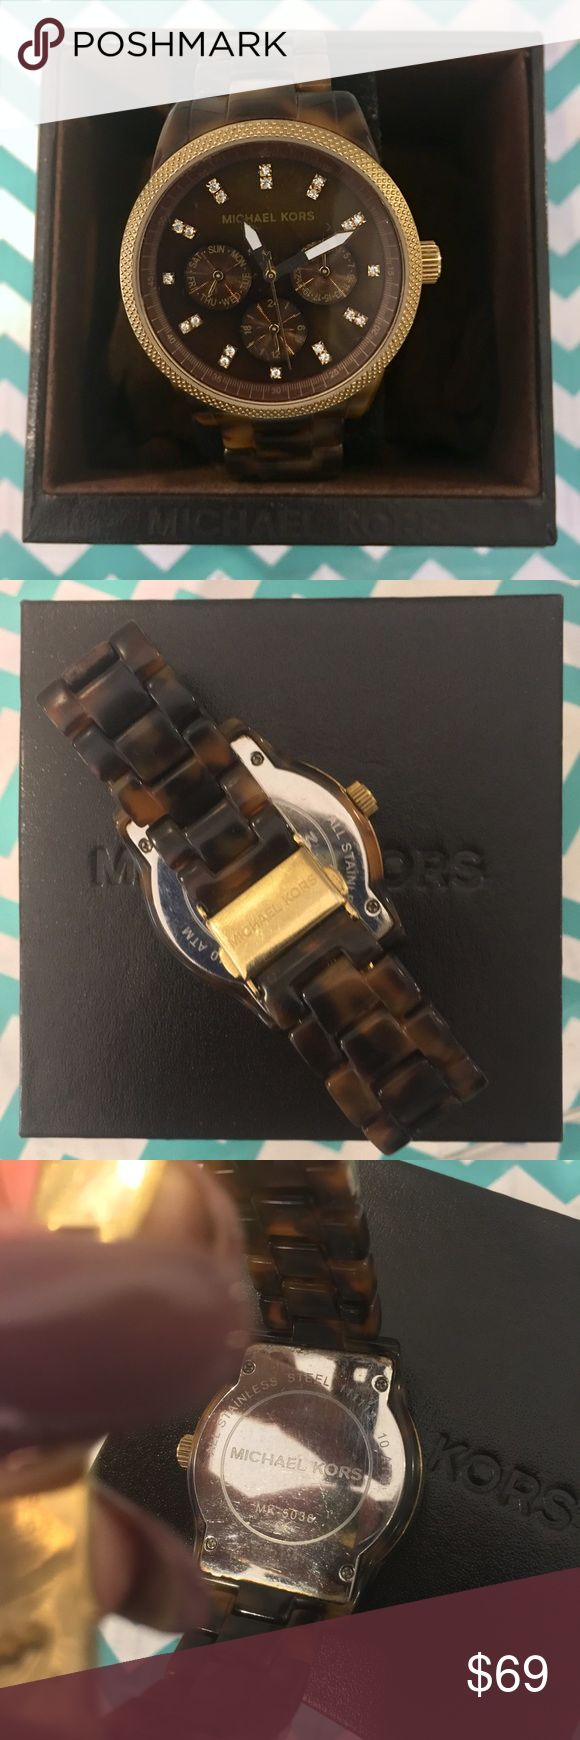 Brown & Gold Michael Kors Tortoise & Pearl Watch MK ladies watch in EXCELLENT used condition. Michael Kors Accessories Watches